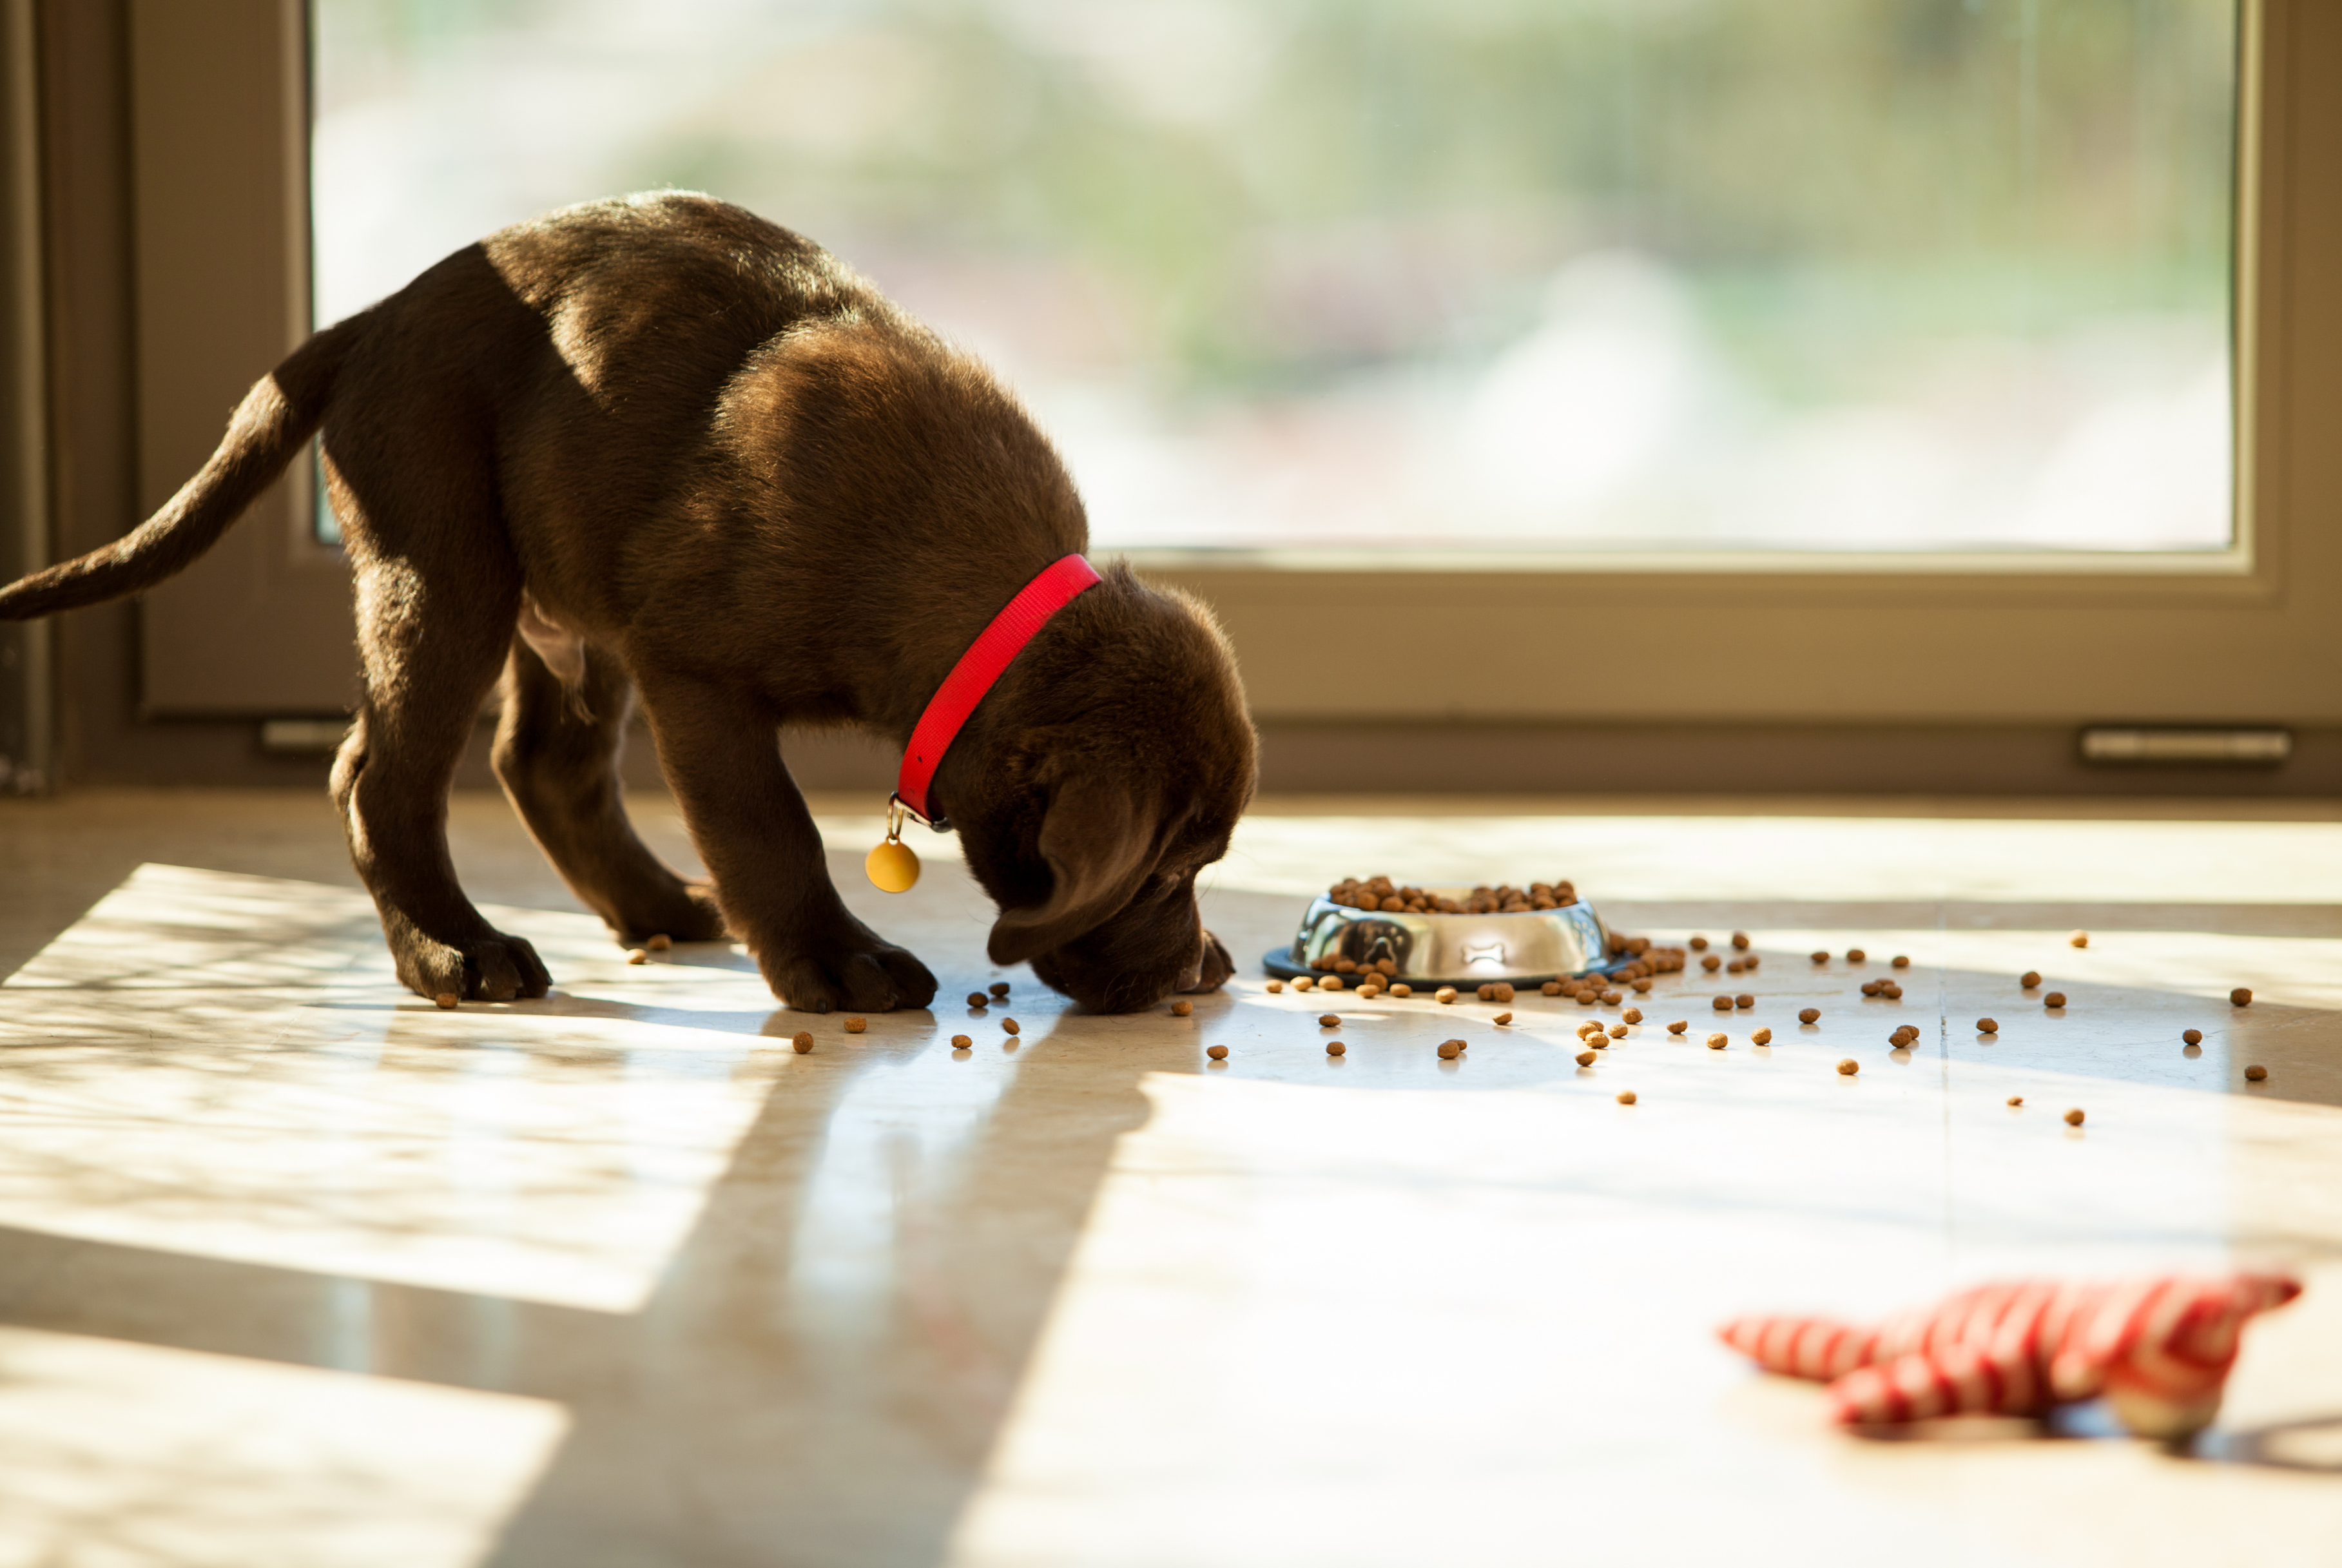 brown Labrador puppy eating kibble off the floor next to a window